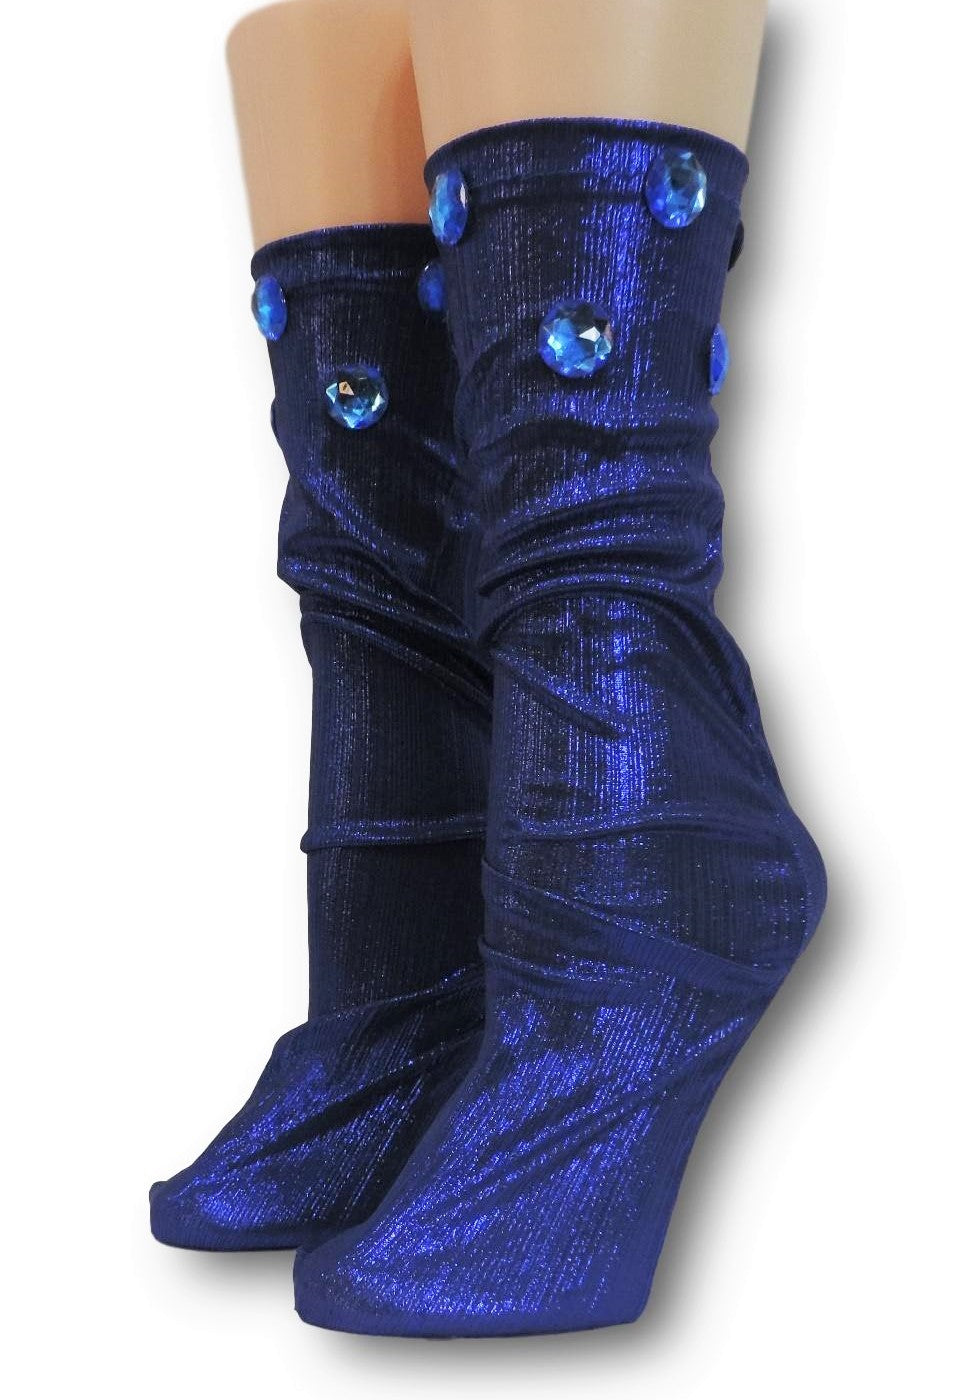 Navy Reflective Socks with beads